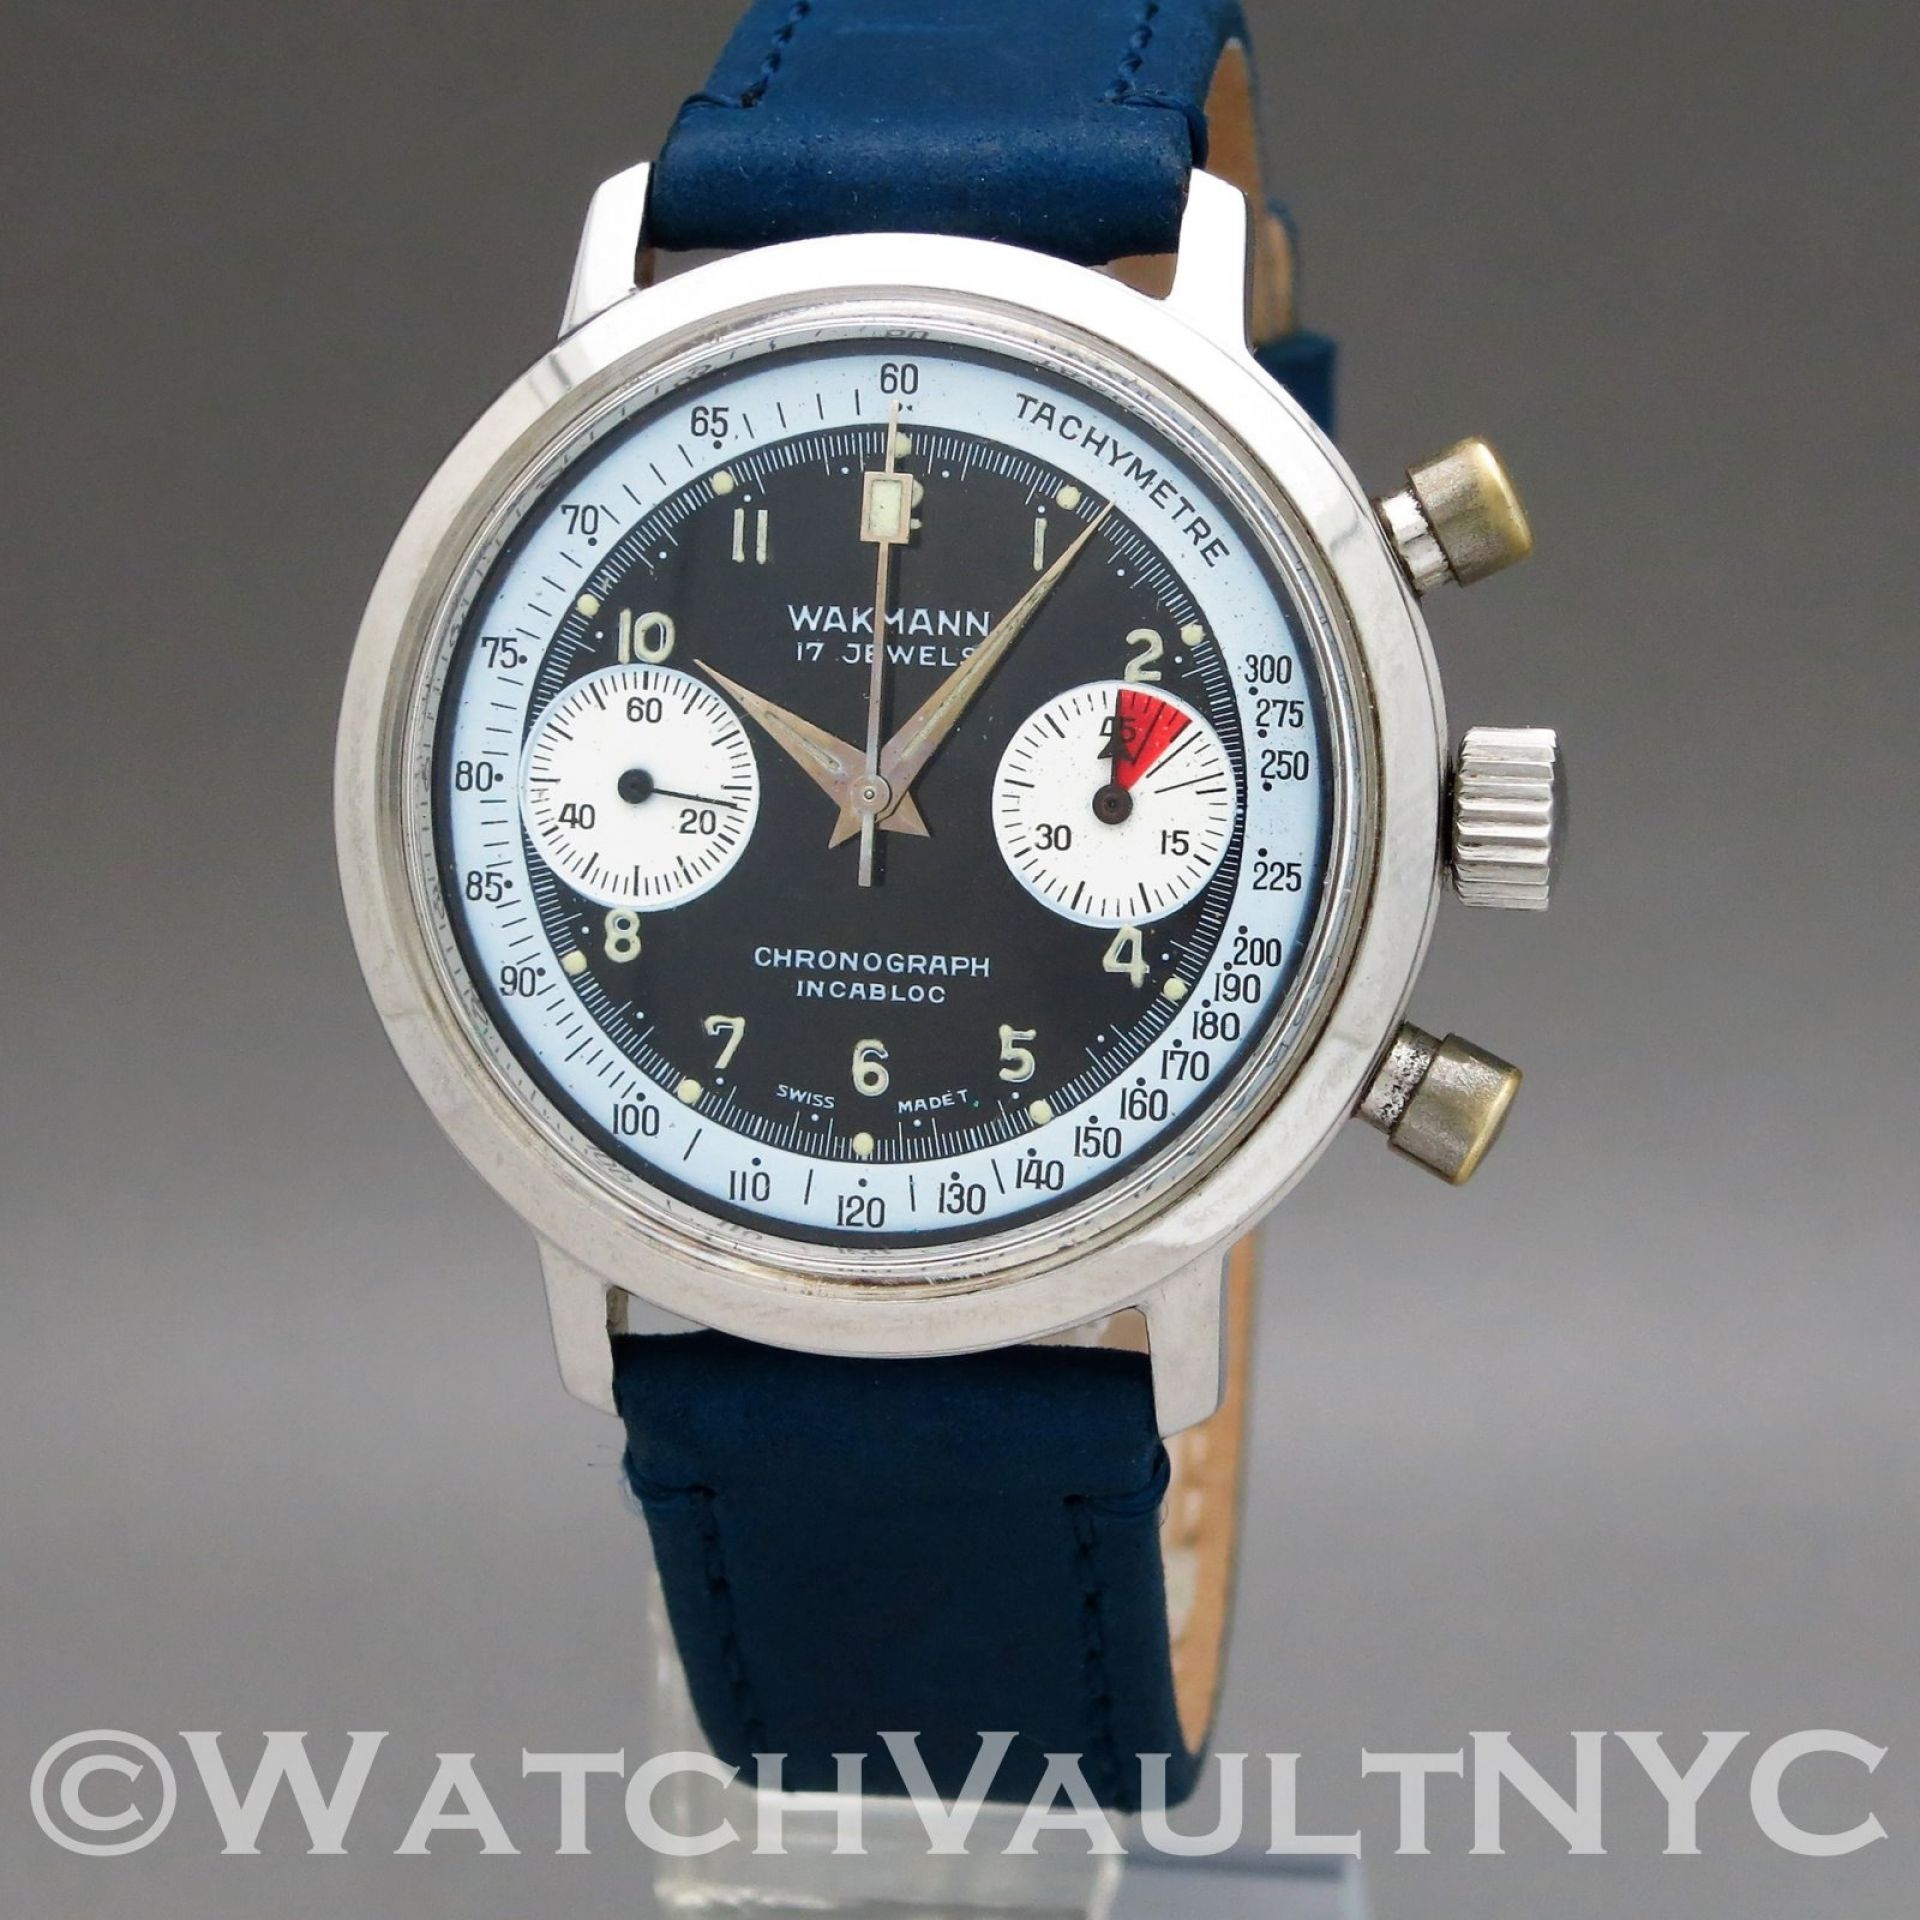 Wakmann Chronograph 332.24 Valjoux 7733 1970s Vintage 37mm Manual RI203